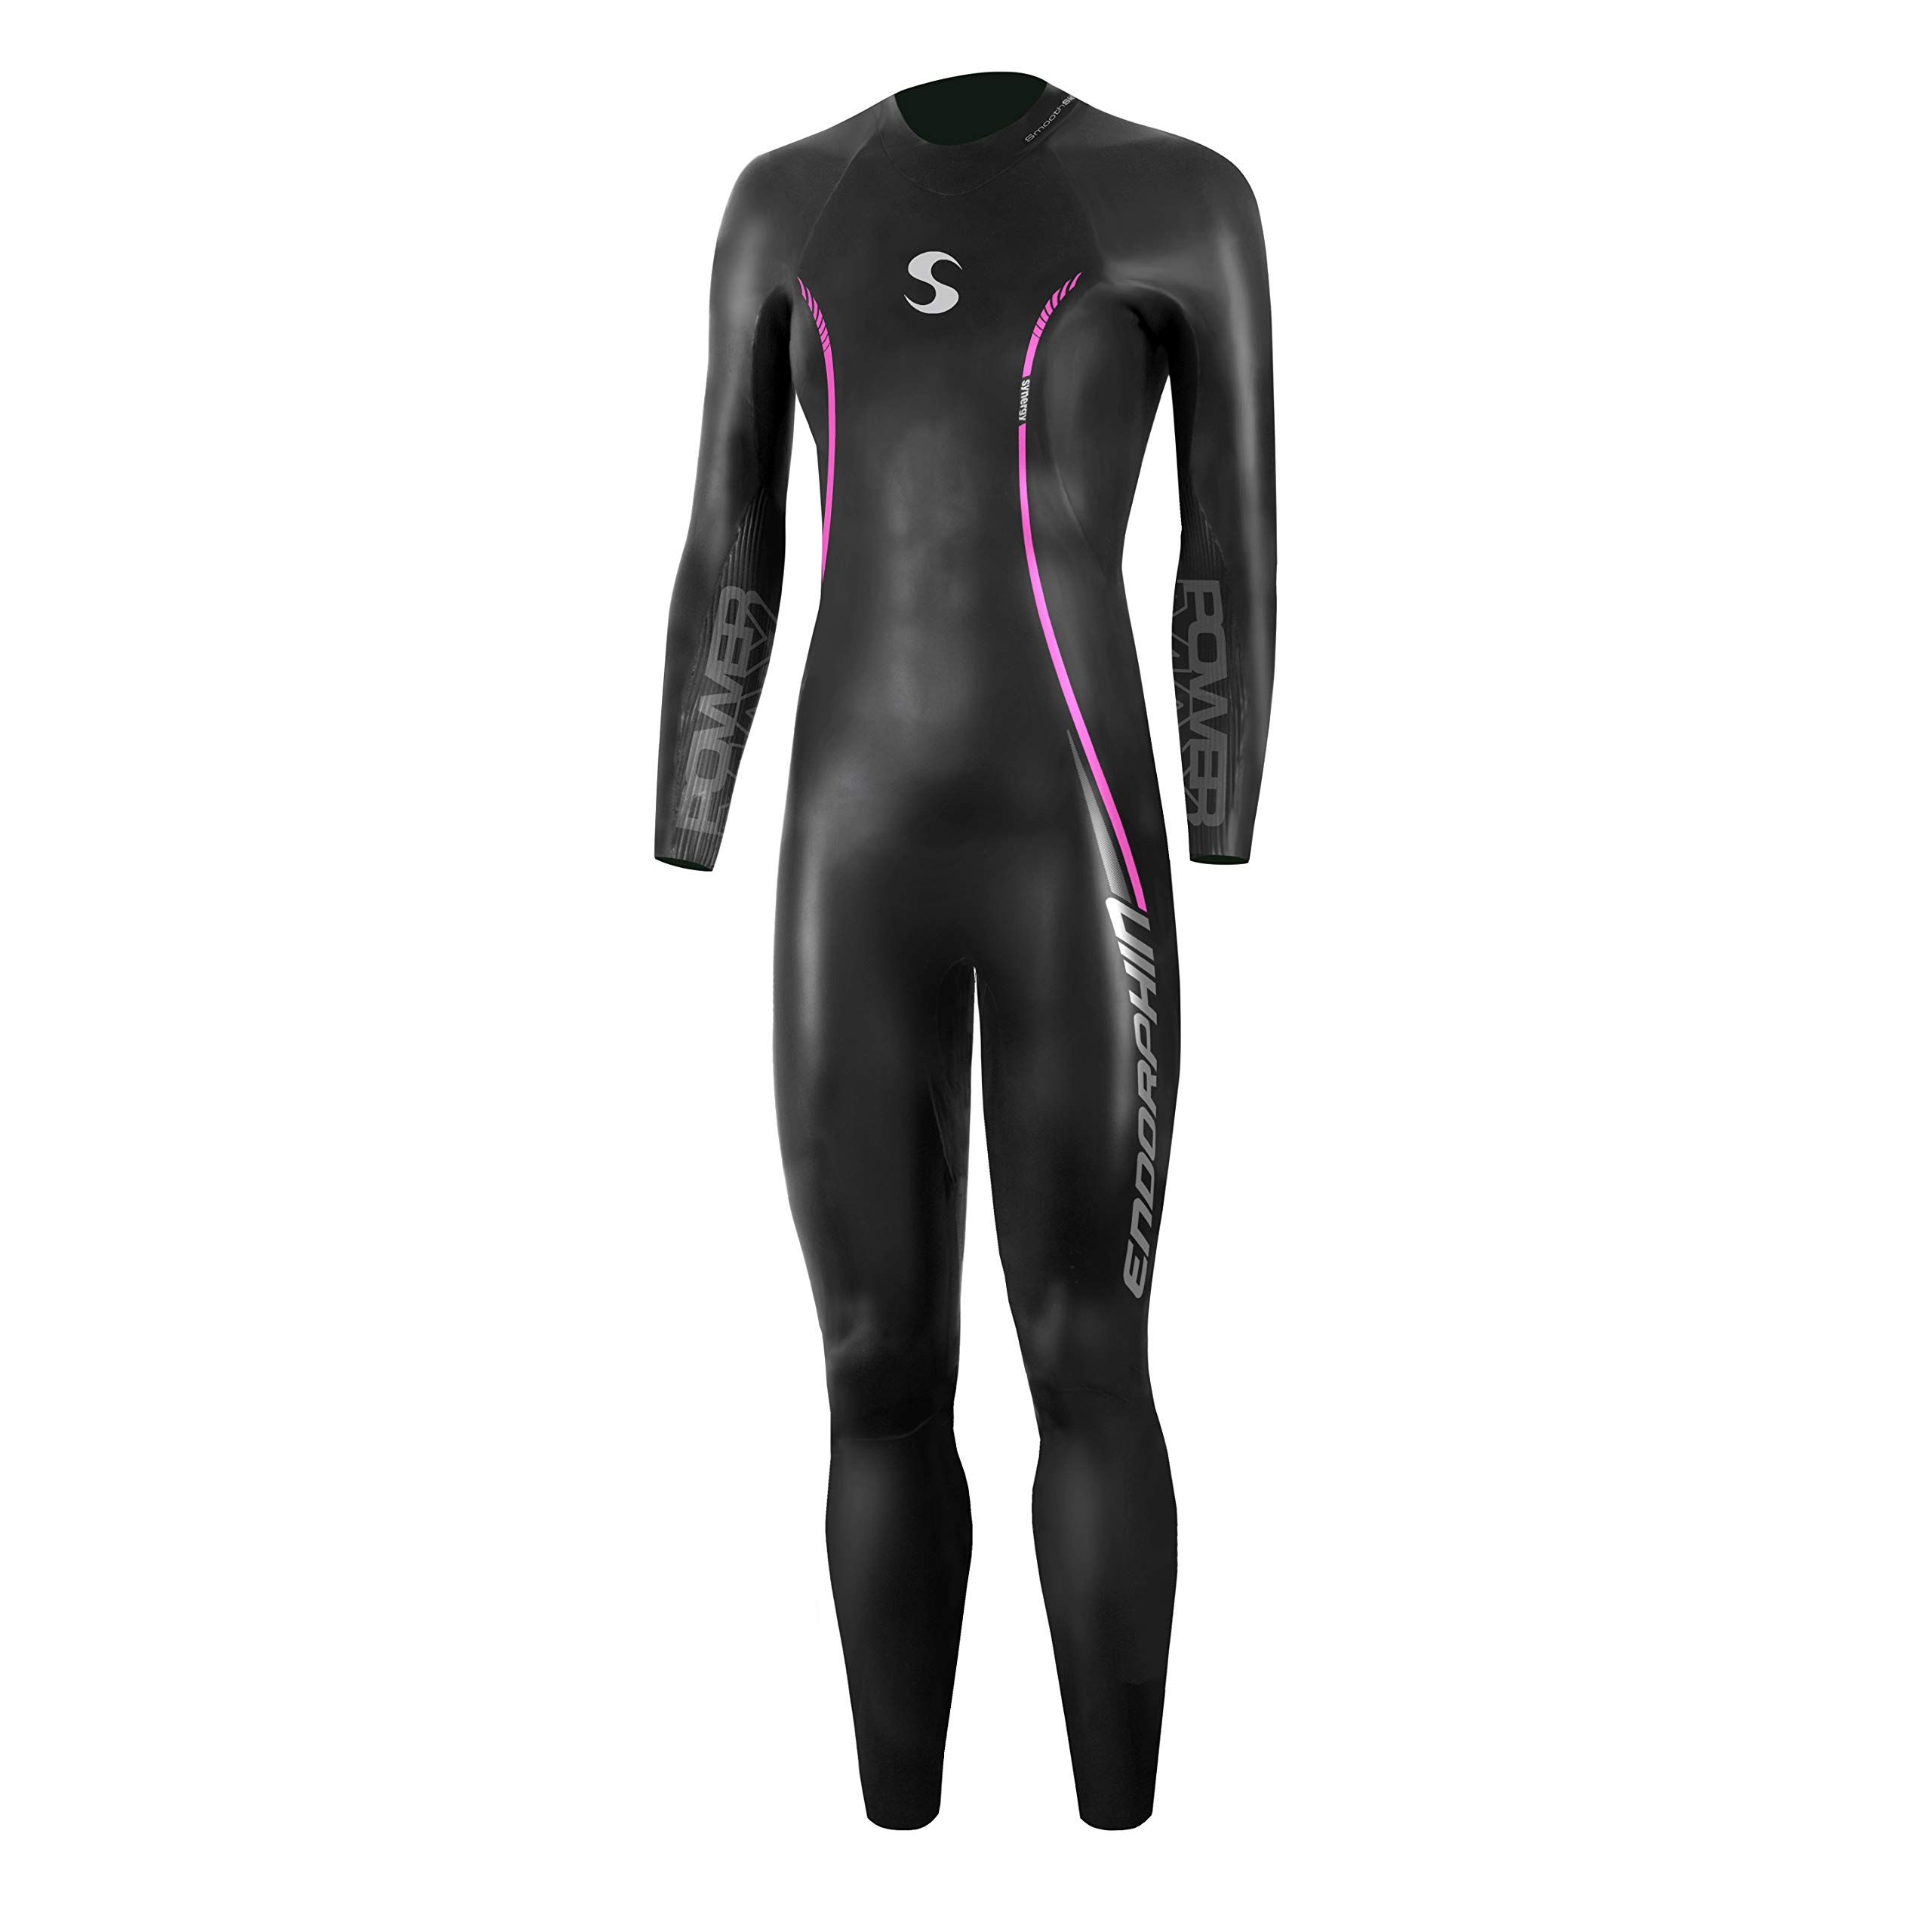 Synergy Endorphin Women's Full Sleeve Triathlon Wetsuit (P3) by Synergy